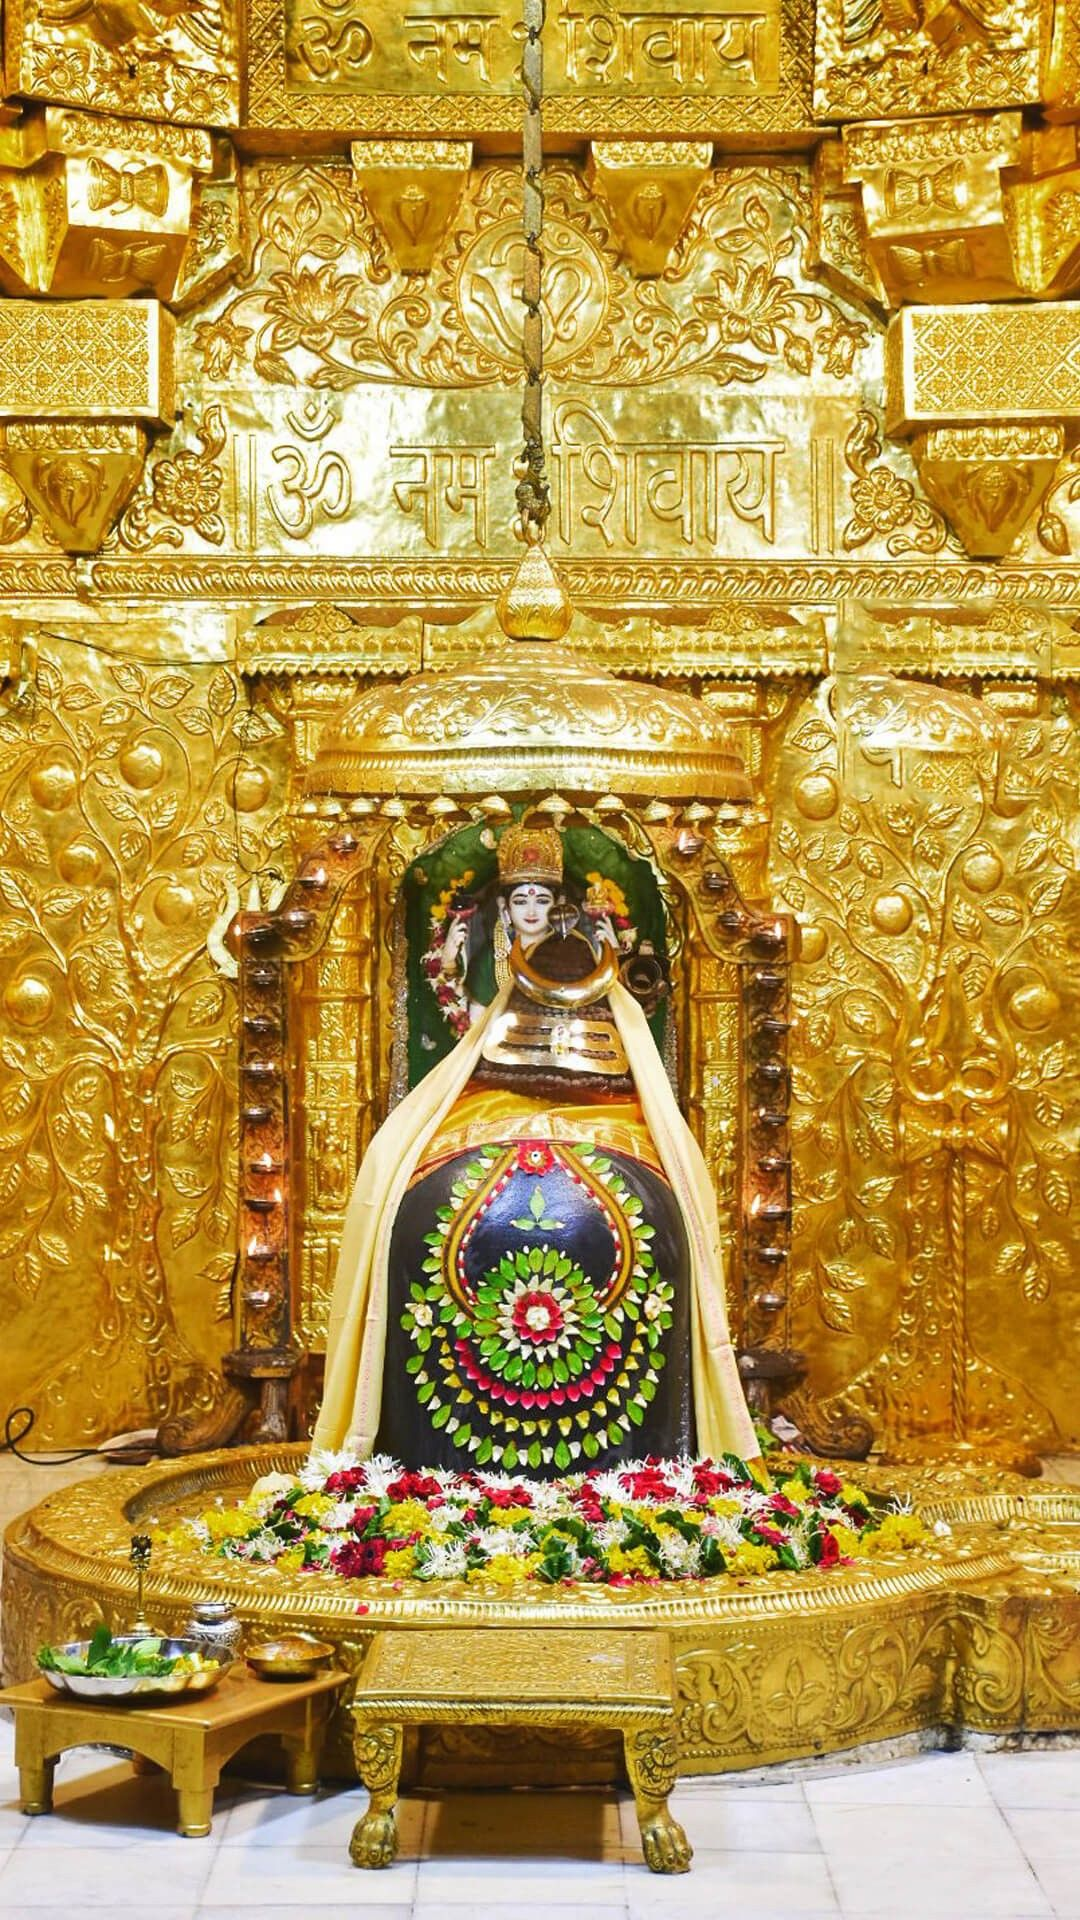 Are You Searching For High Resolution And Desktop Hd Images Of Somnath Mahadev Hd Wallpapers